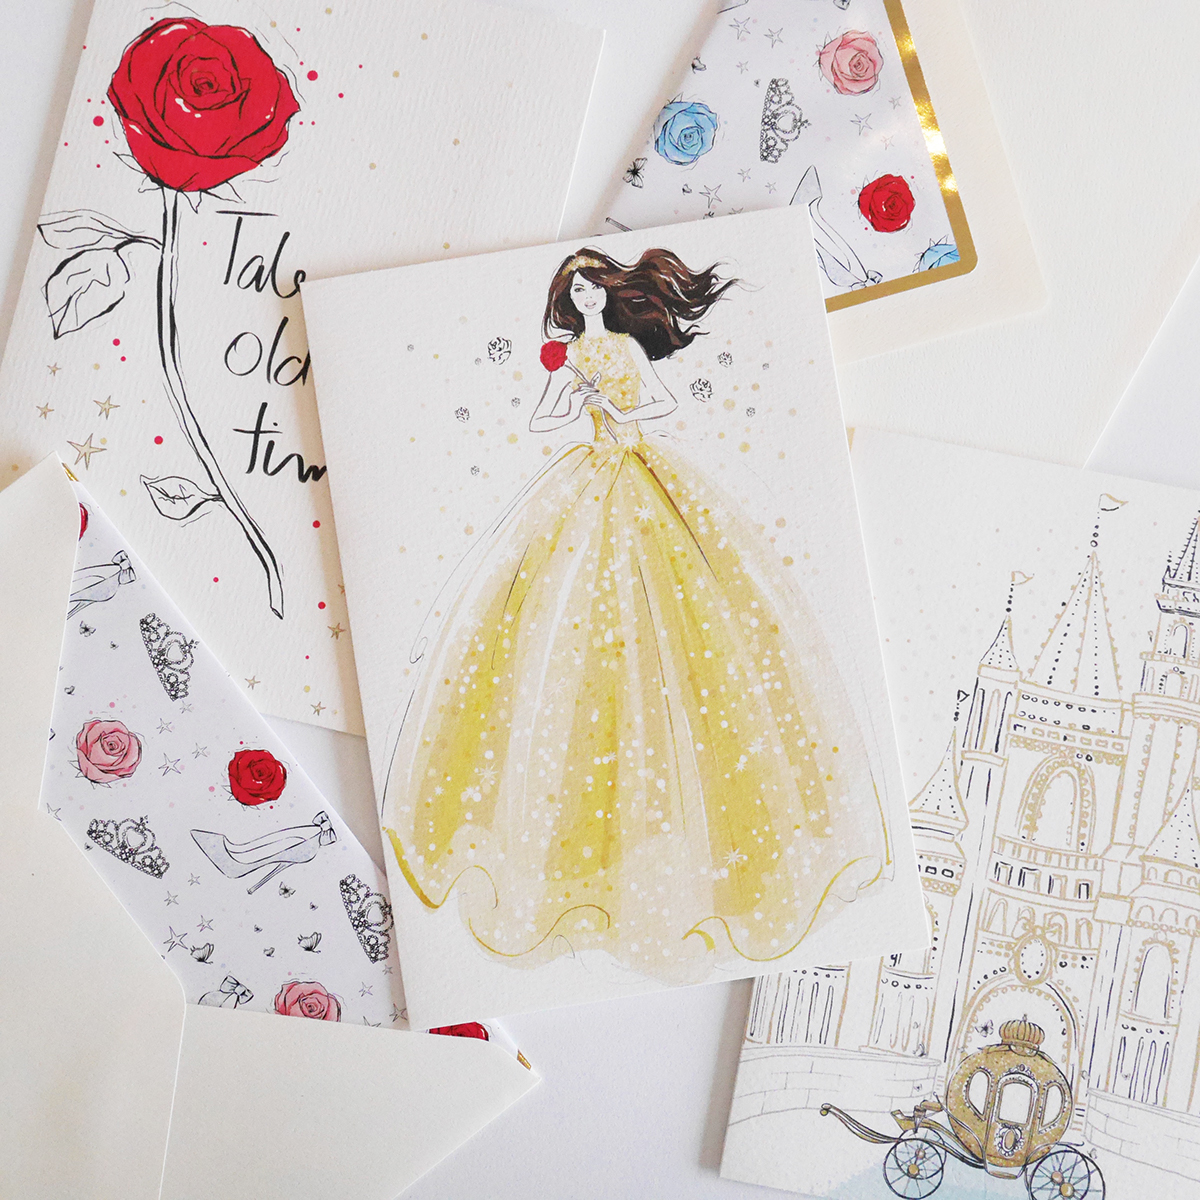 Megan hess for hallmark and the walt disney company the jacky this new series joins the extensive range of cards megan hess released earlier in the year with hallmark that cover almost every occasion m4hsunfo